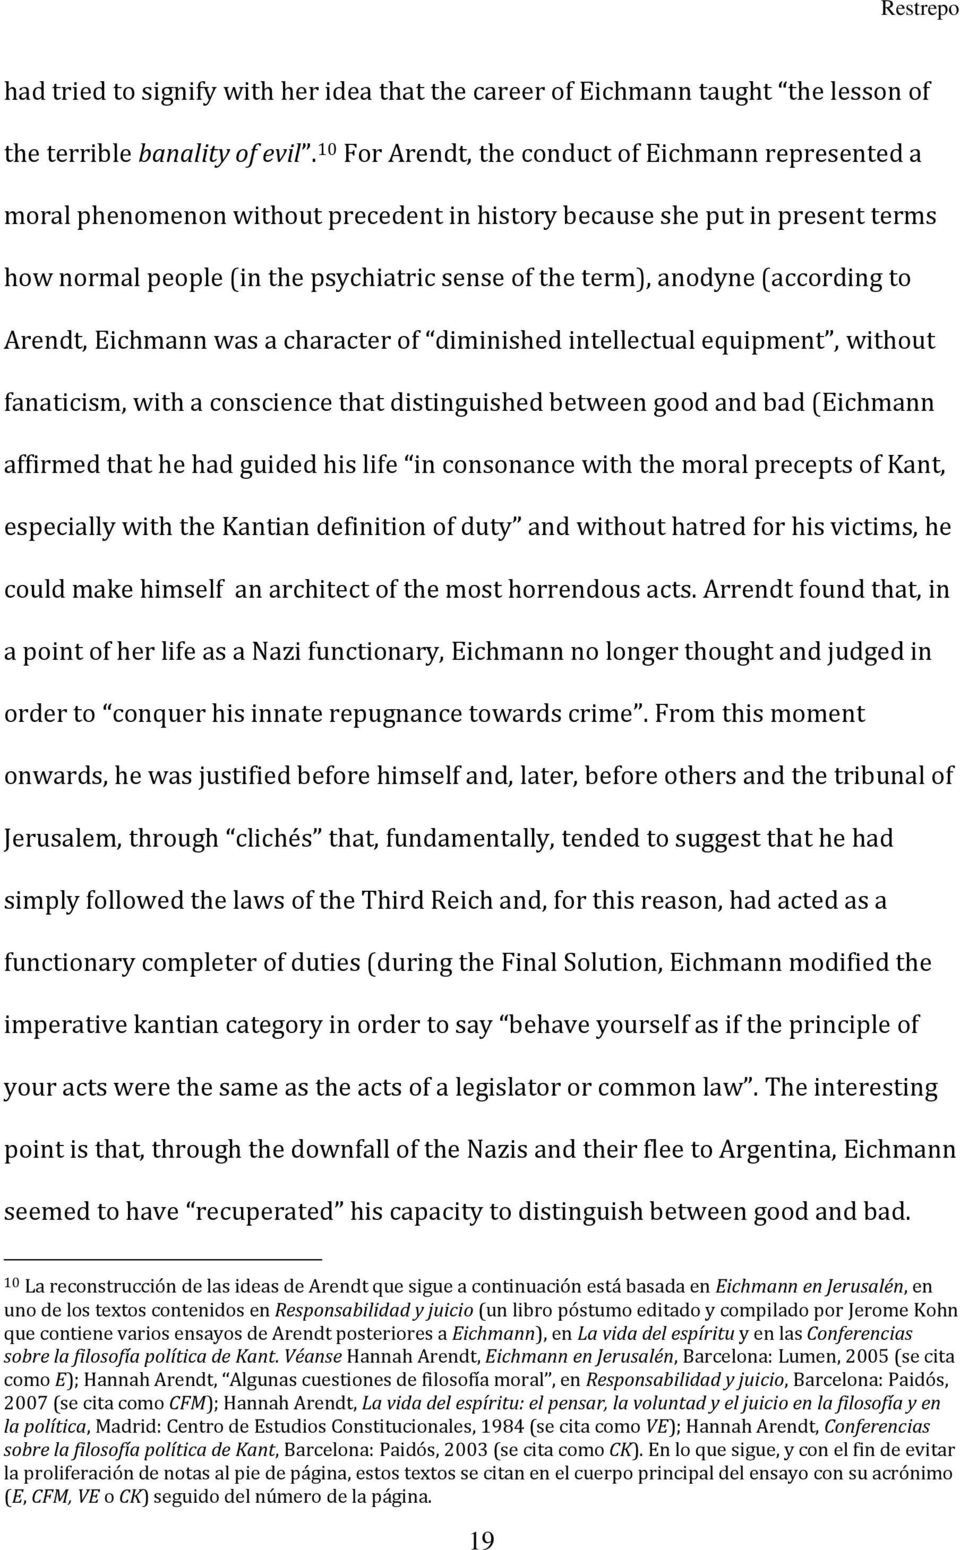 (according to Arendt, Eichmann was a character of diminished intellectual equipment, without fanaticism, with a conscience that distinguished between good and bad (Eichmann affirmed that he had